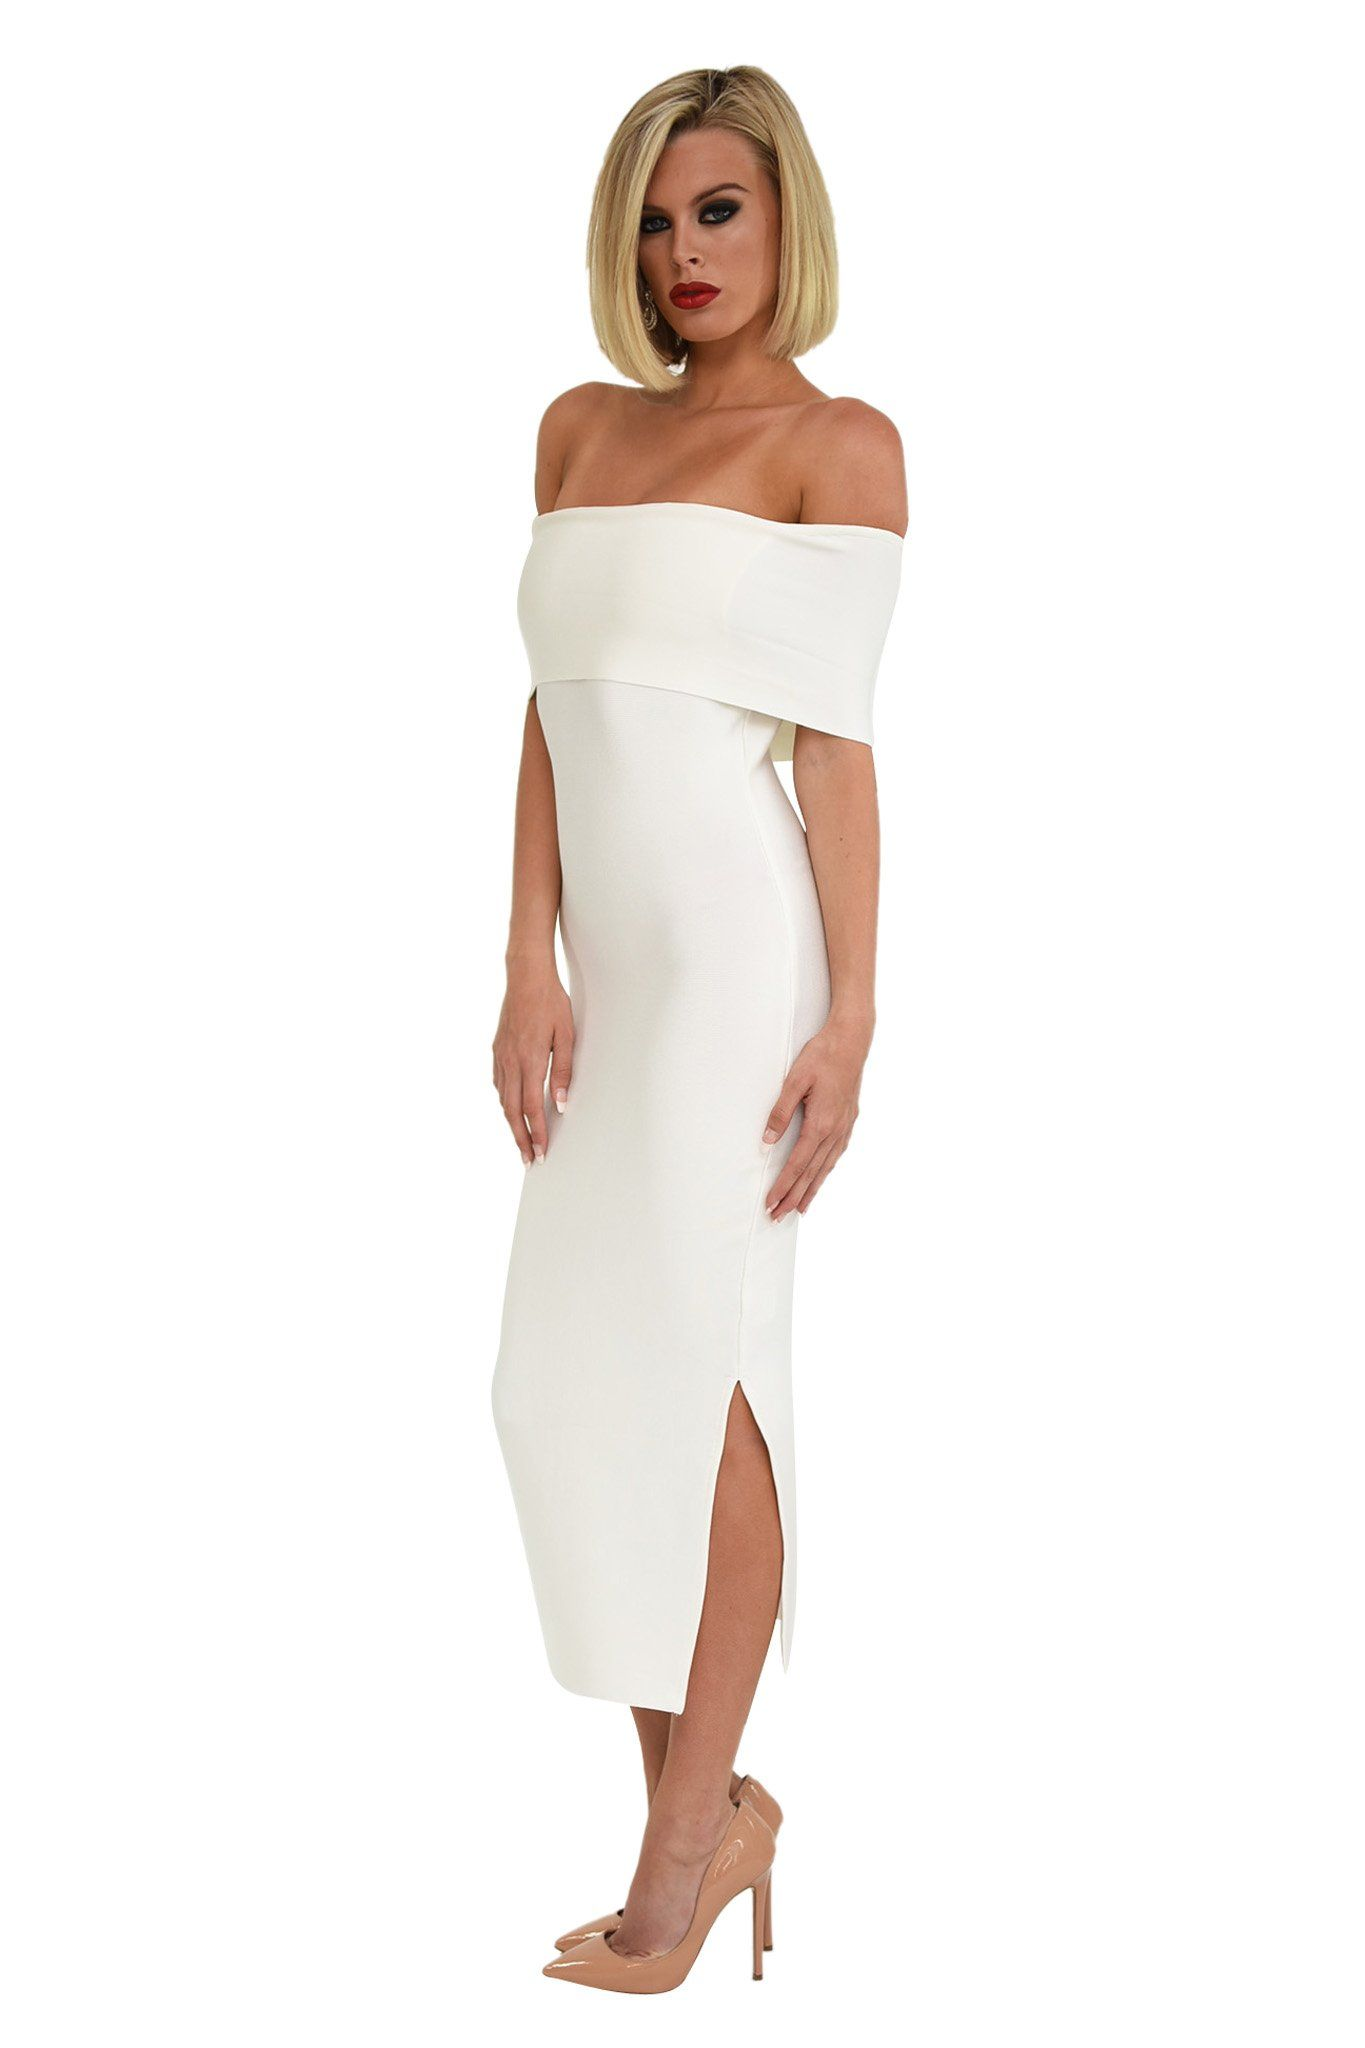 Side of White Off The Shoulder Short Sleeves Midi Form Fitting Bodycon Dress Side Leg Slit